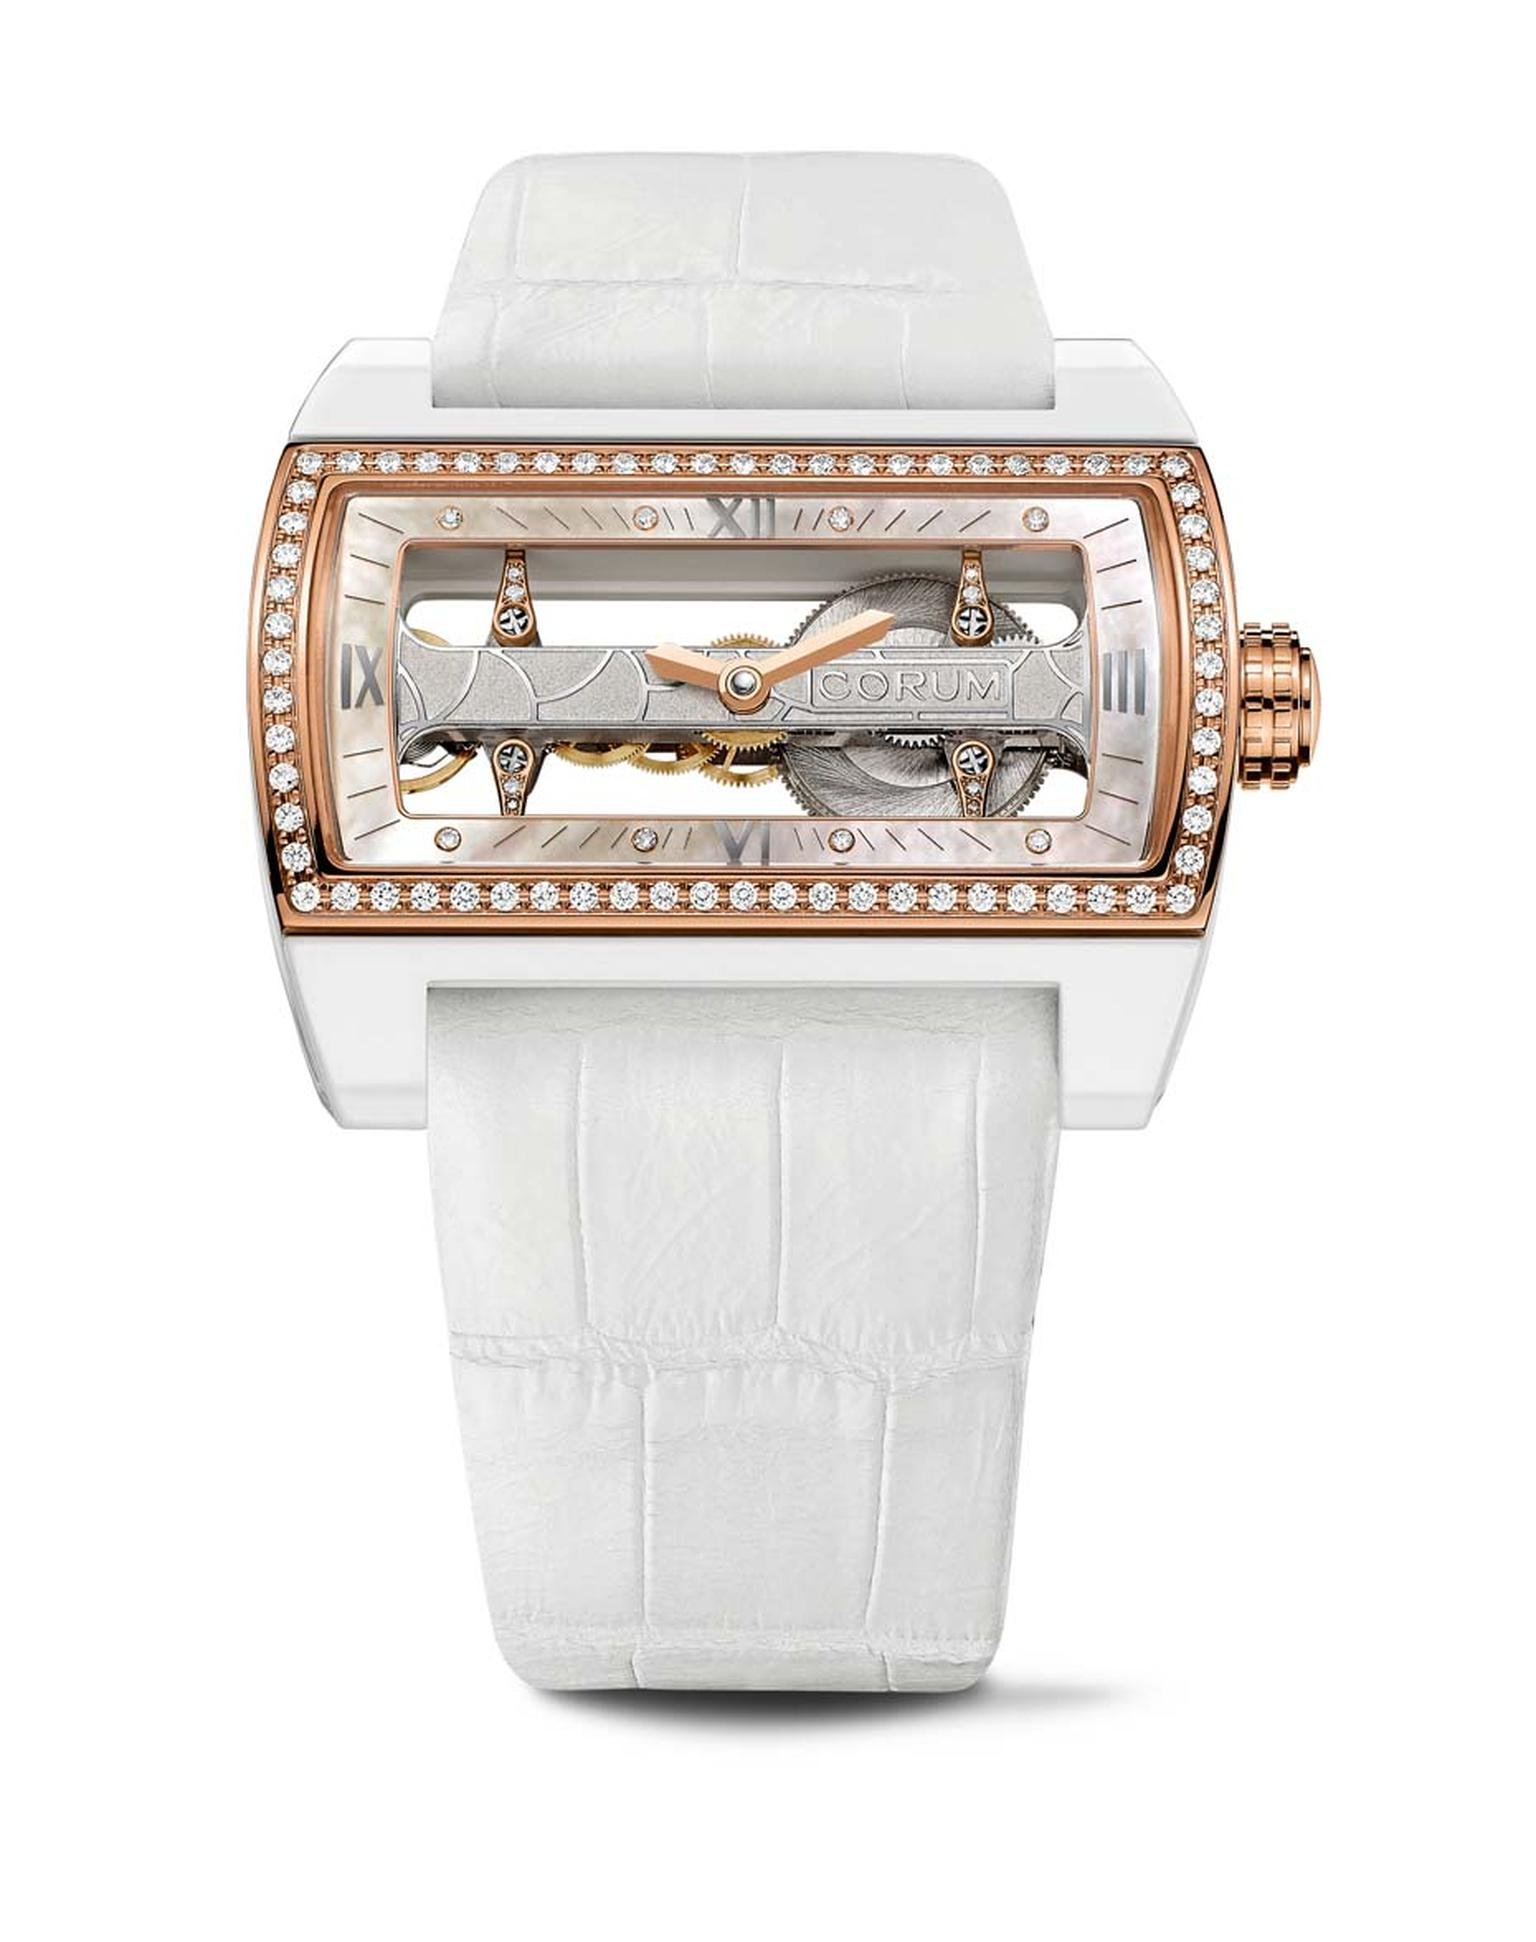 Corum Ti-Bridge Lady displays a hand-wound movement built entirely along one narrow axis and is on view through the all-glass dial and case back.